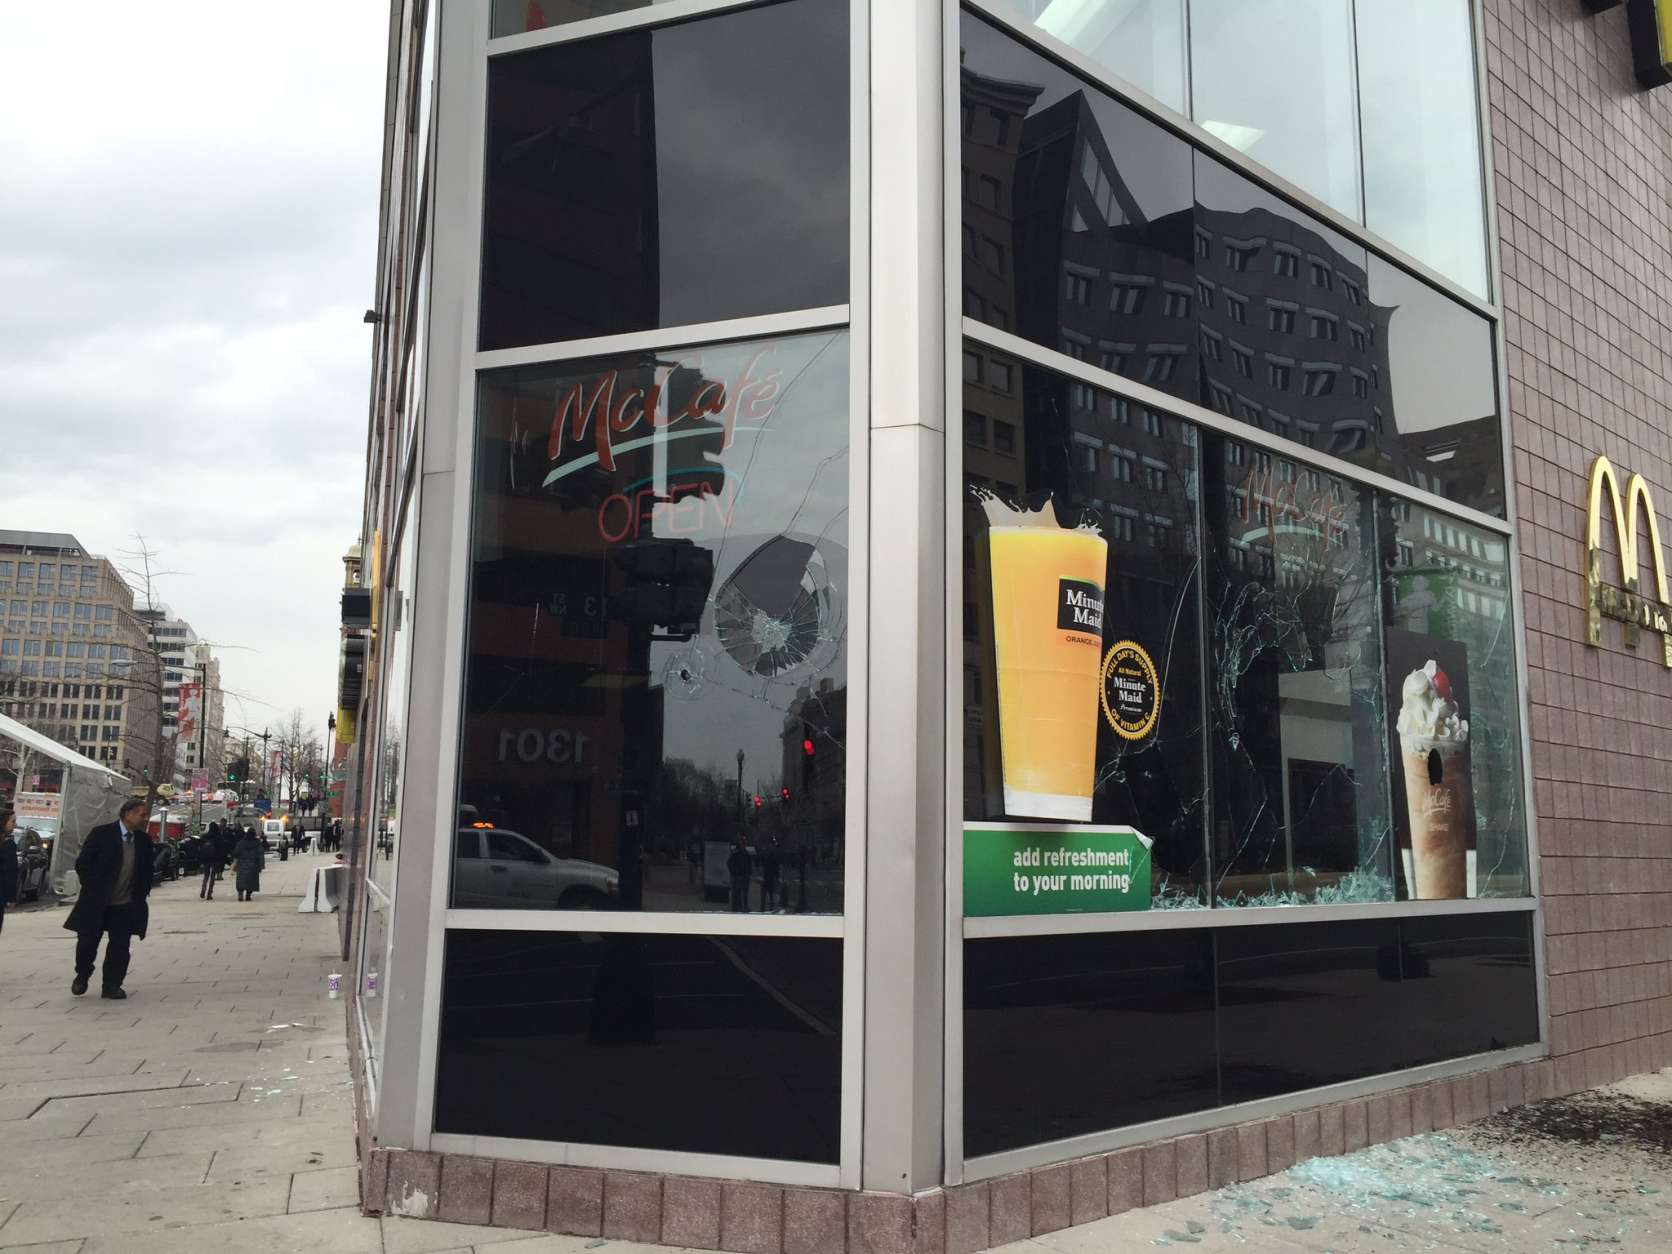 Protests escalate, and a McDonald's on the corner of New York Avenue and 13th Street NW suffers damage. (WTOP/Dennis Foley)